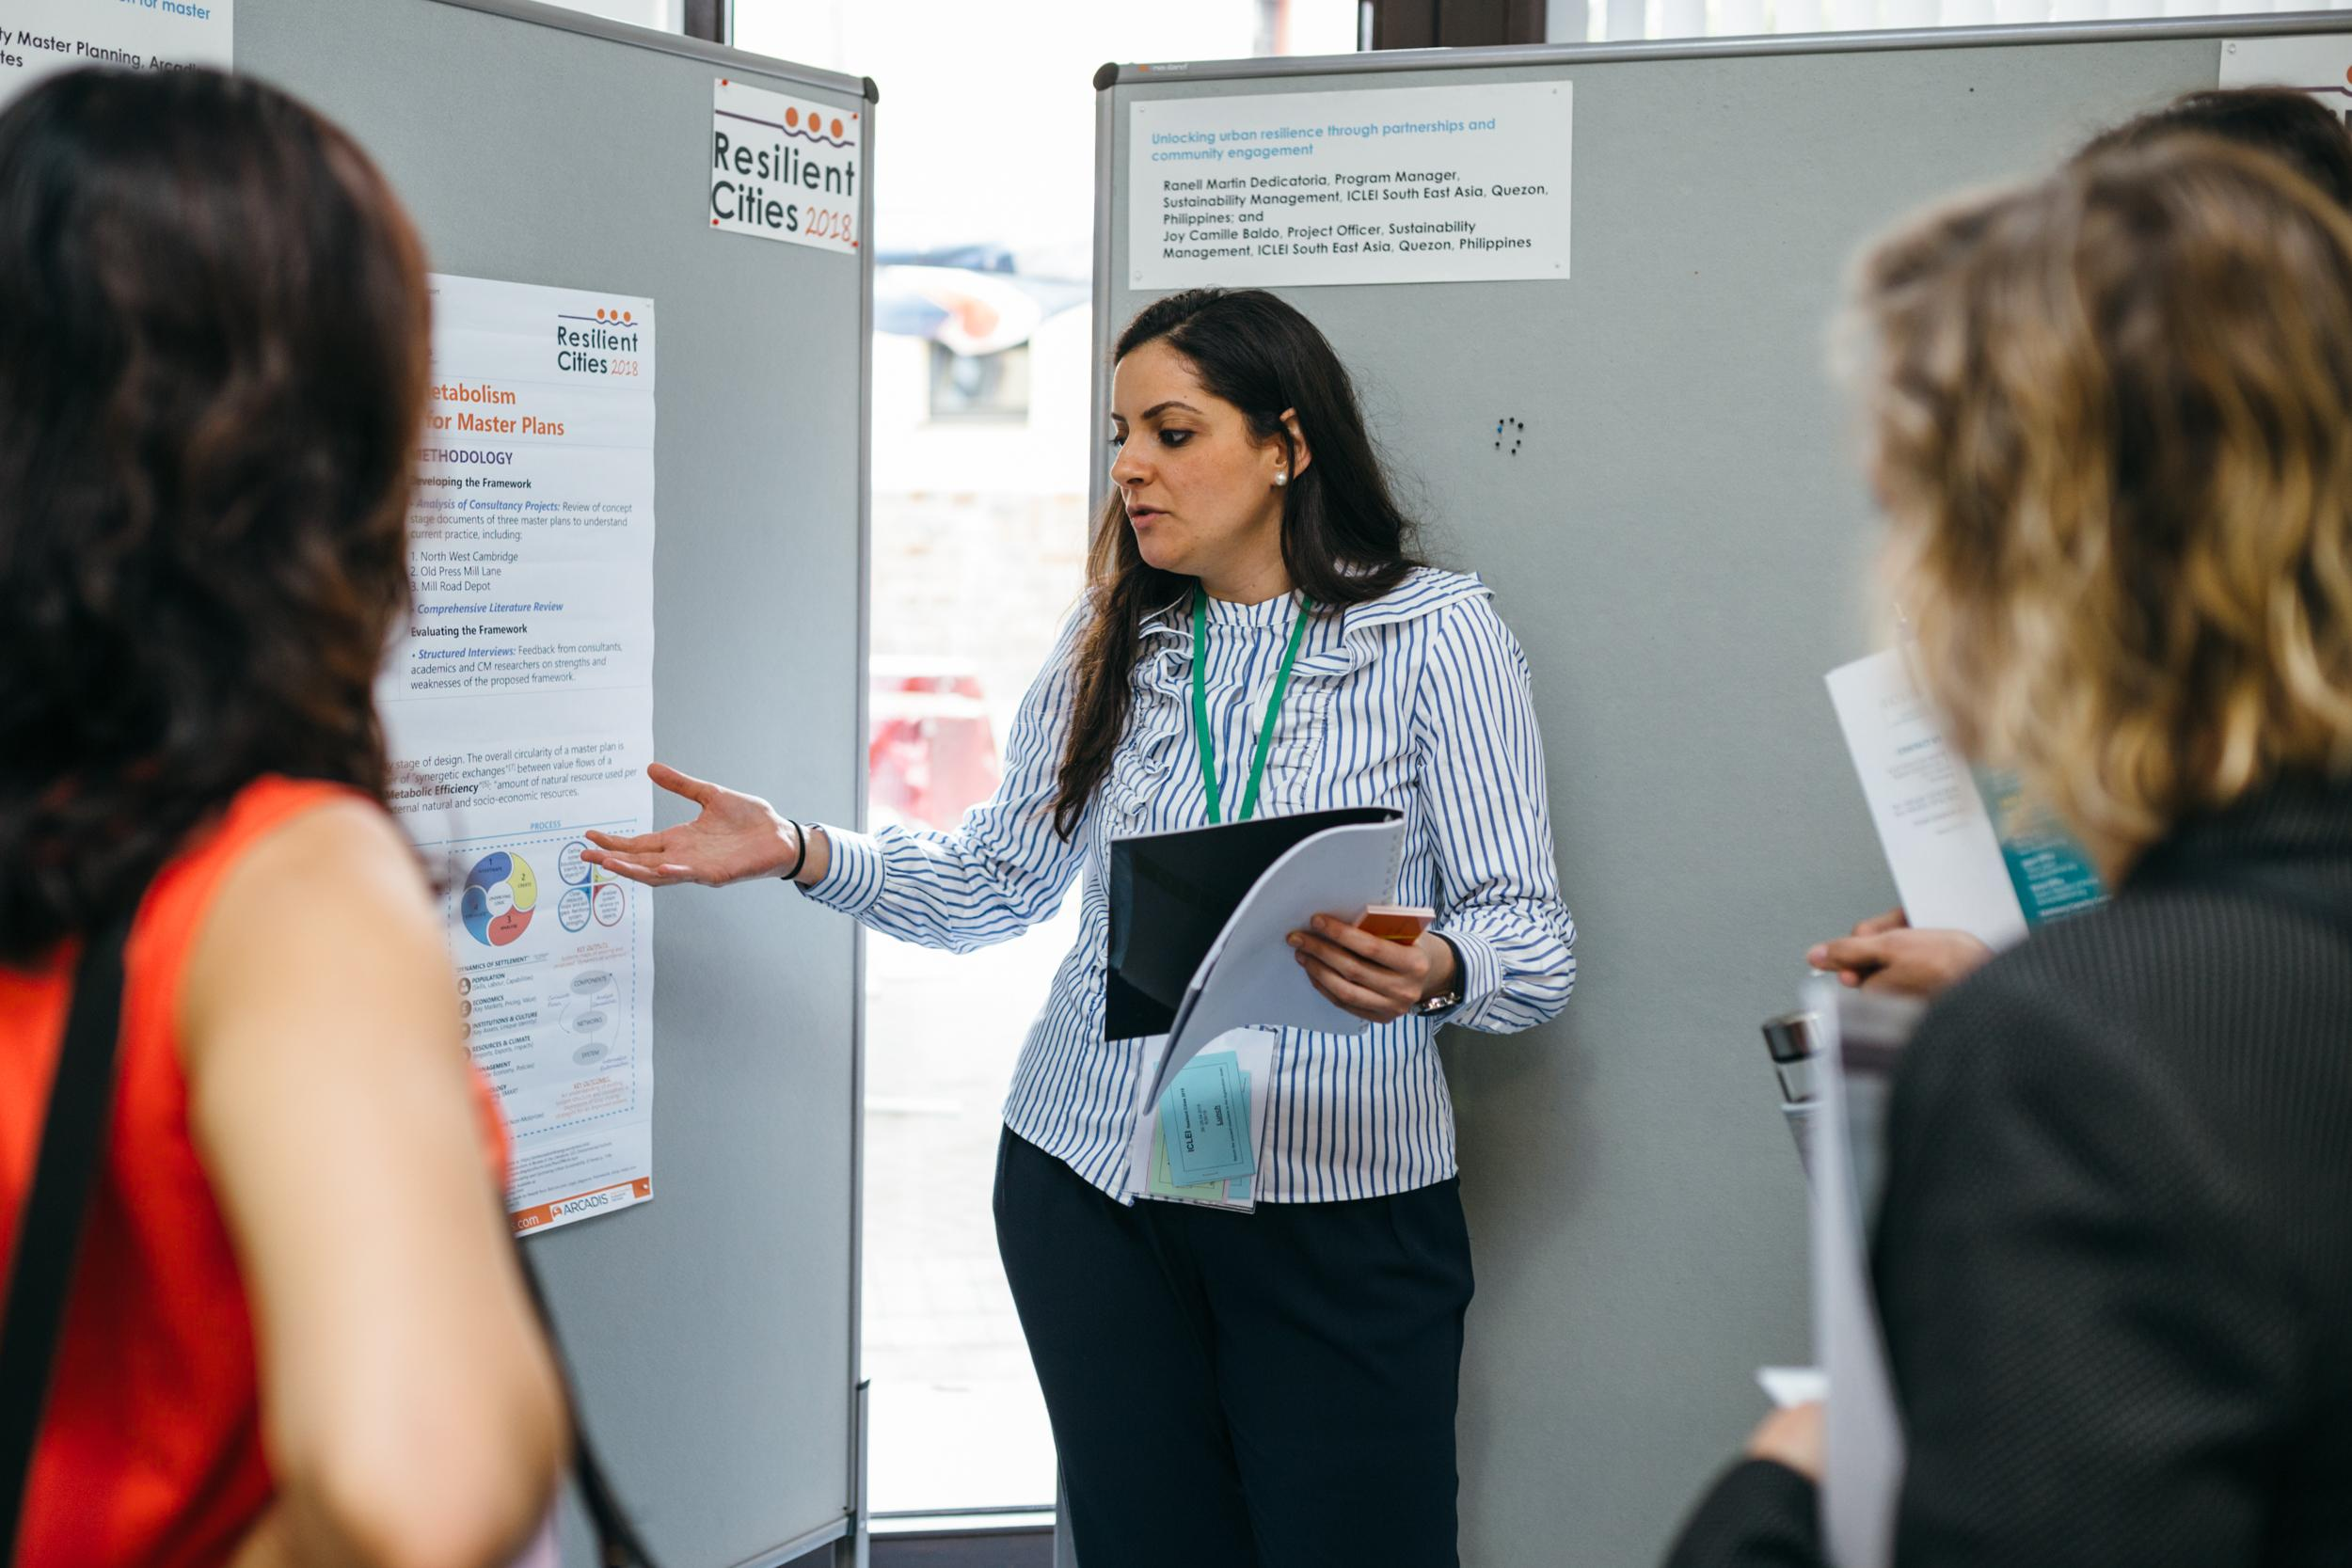 Menna Dessouki (ESD 15-16 ) presents at Resilient Cities 2018 conference